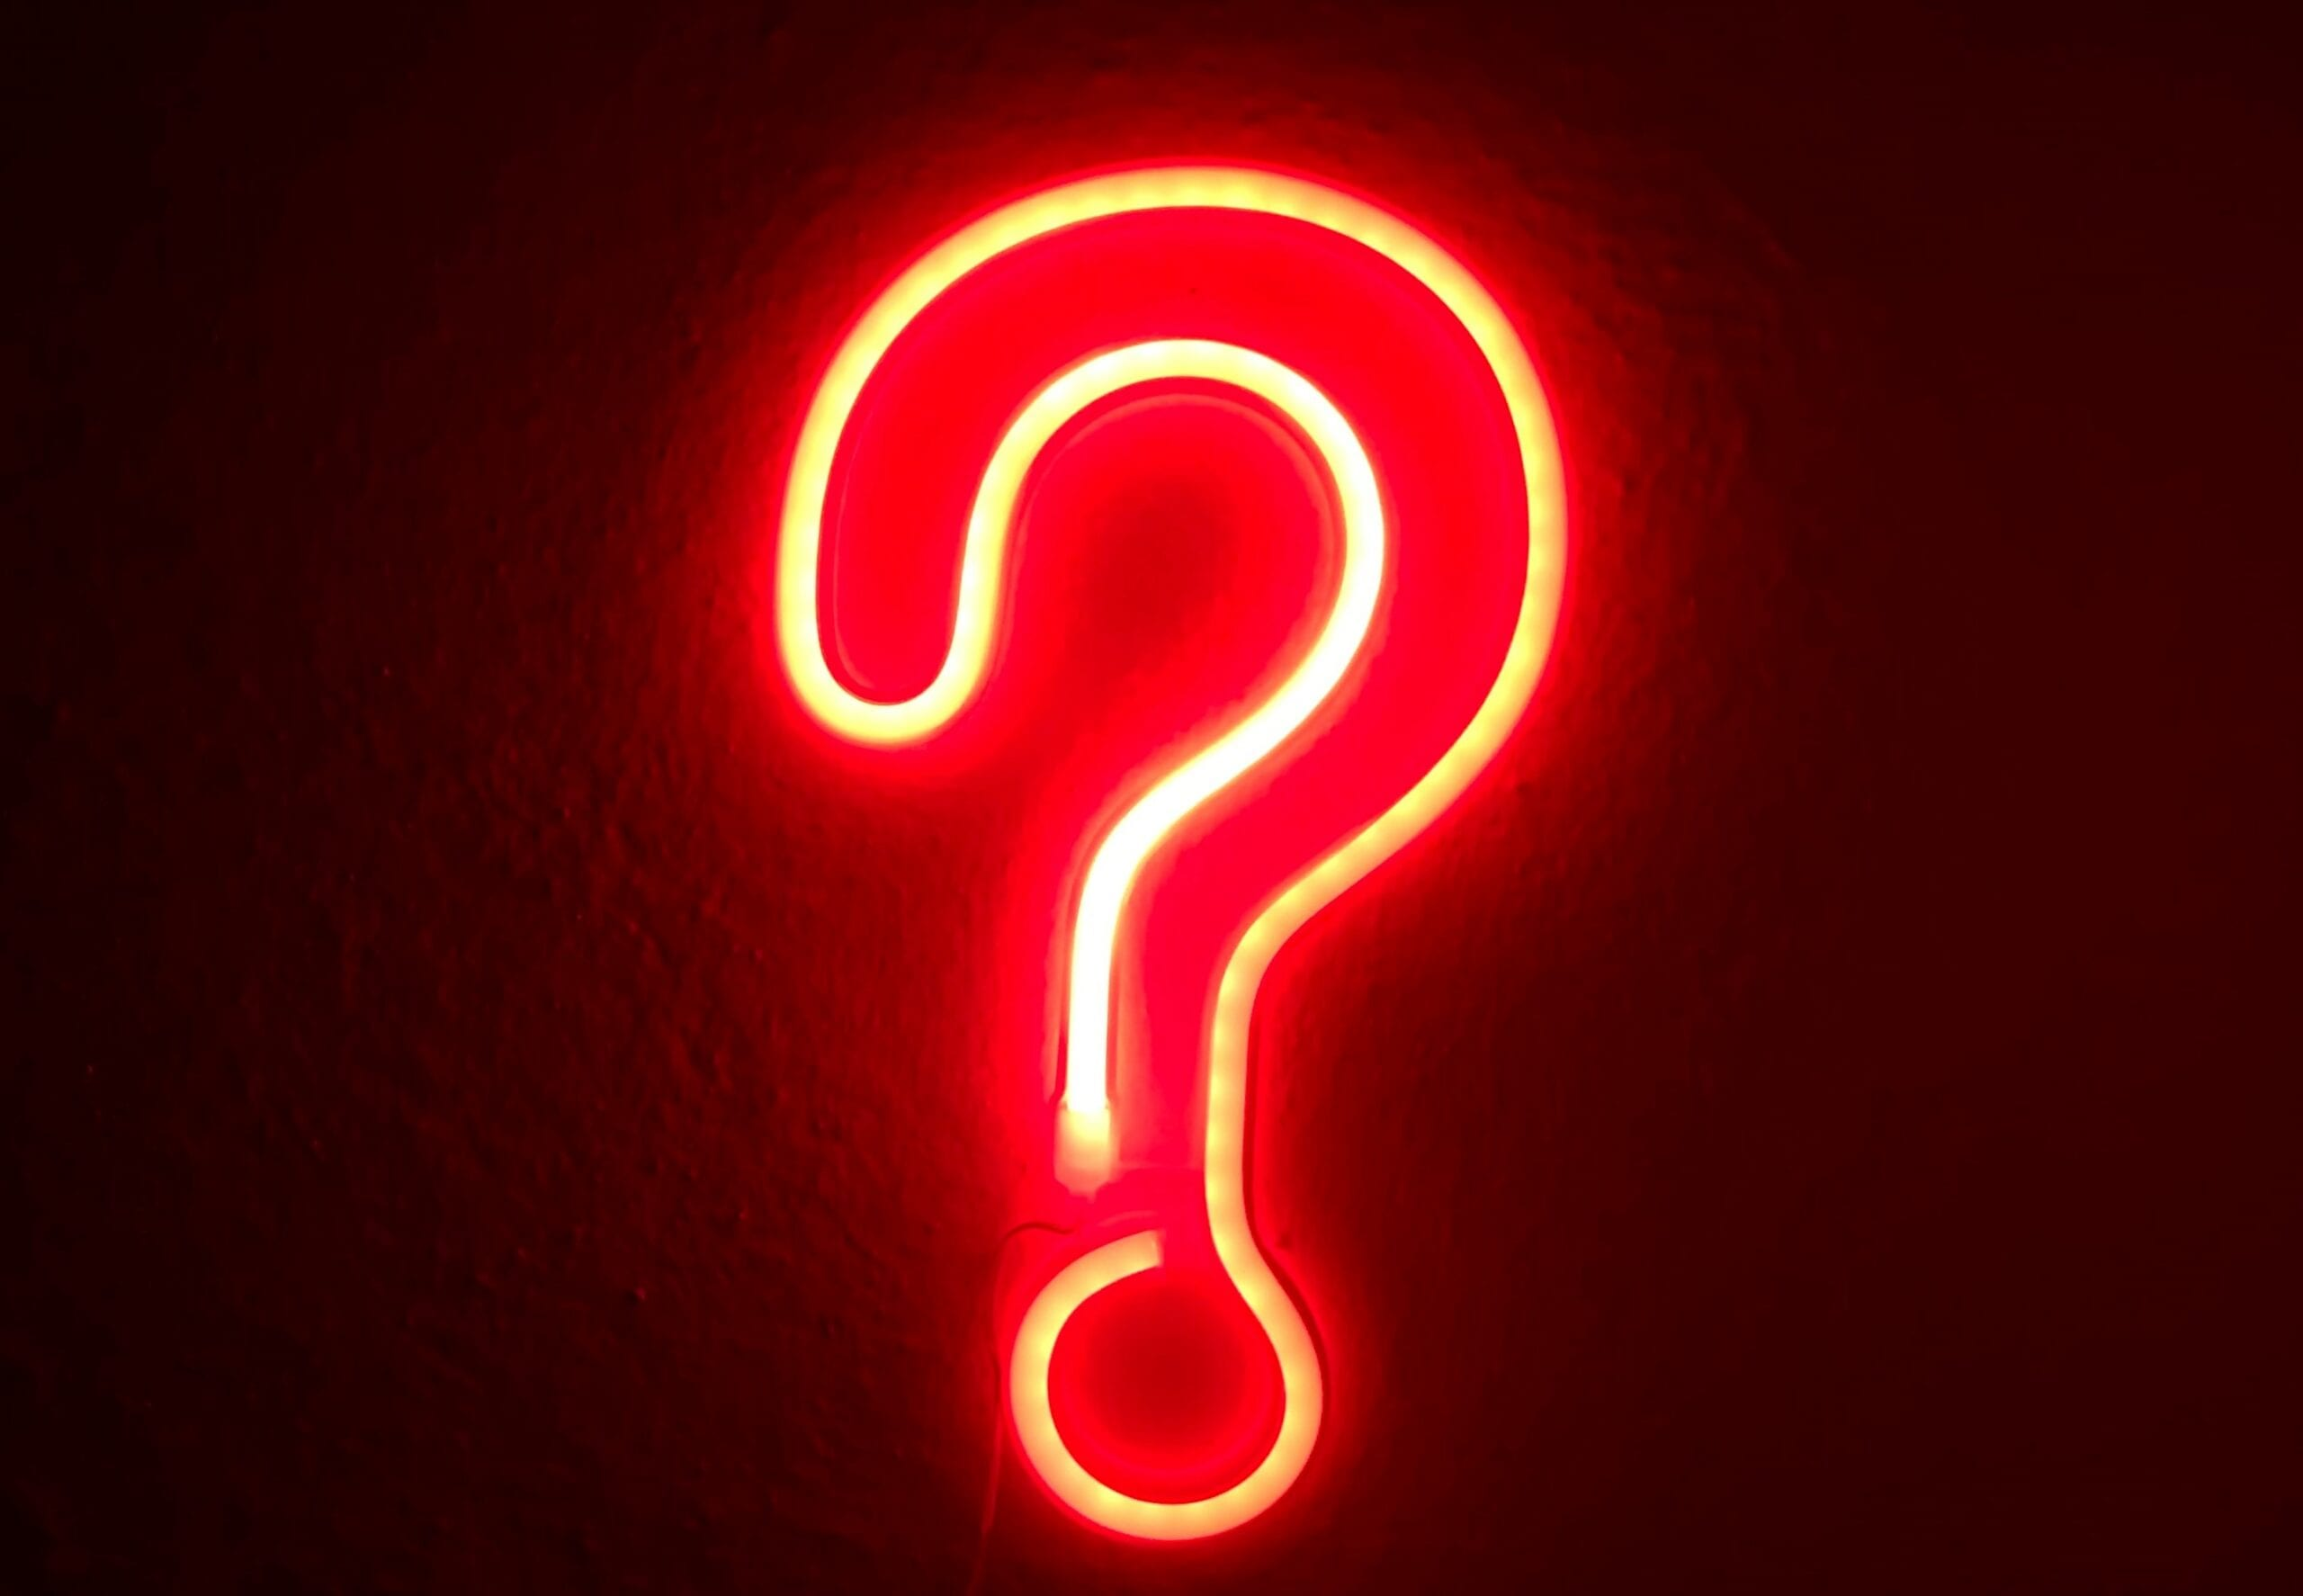 A red, fluorescent question mark